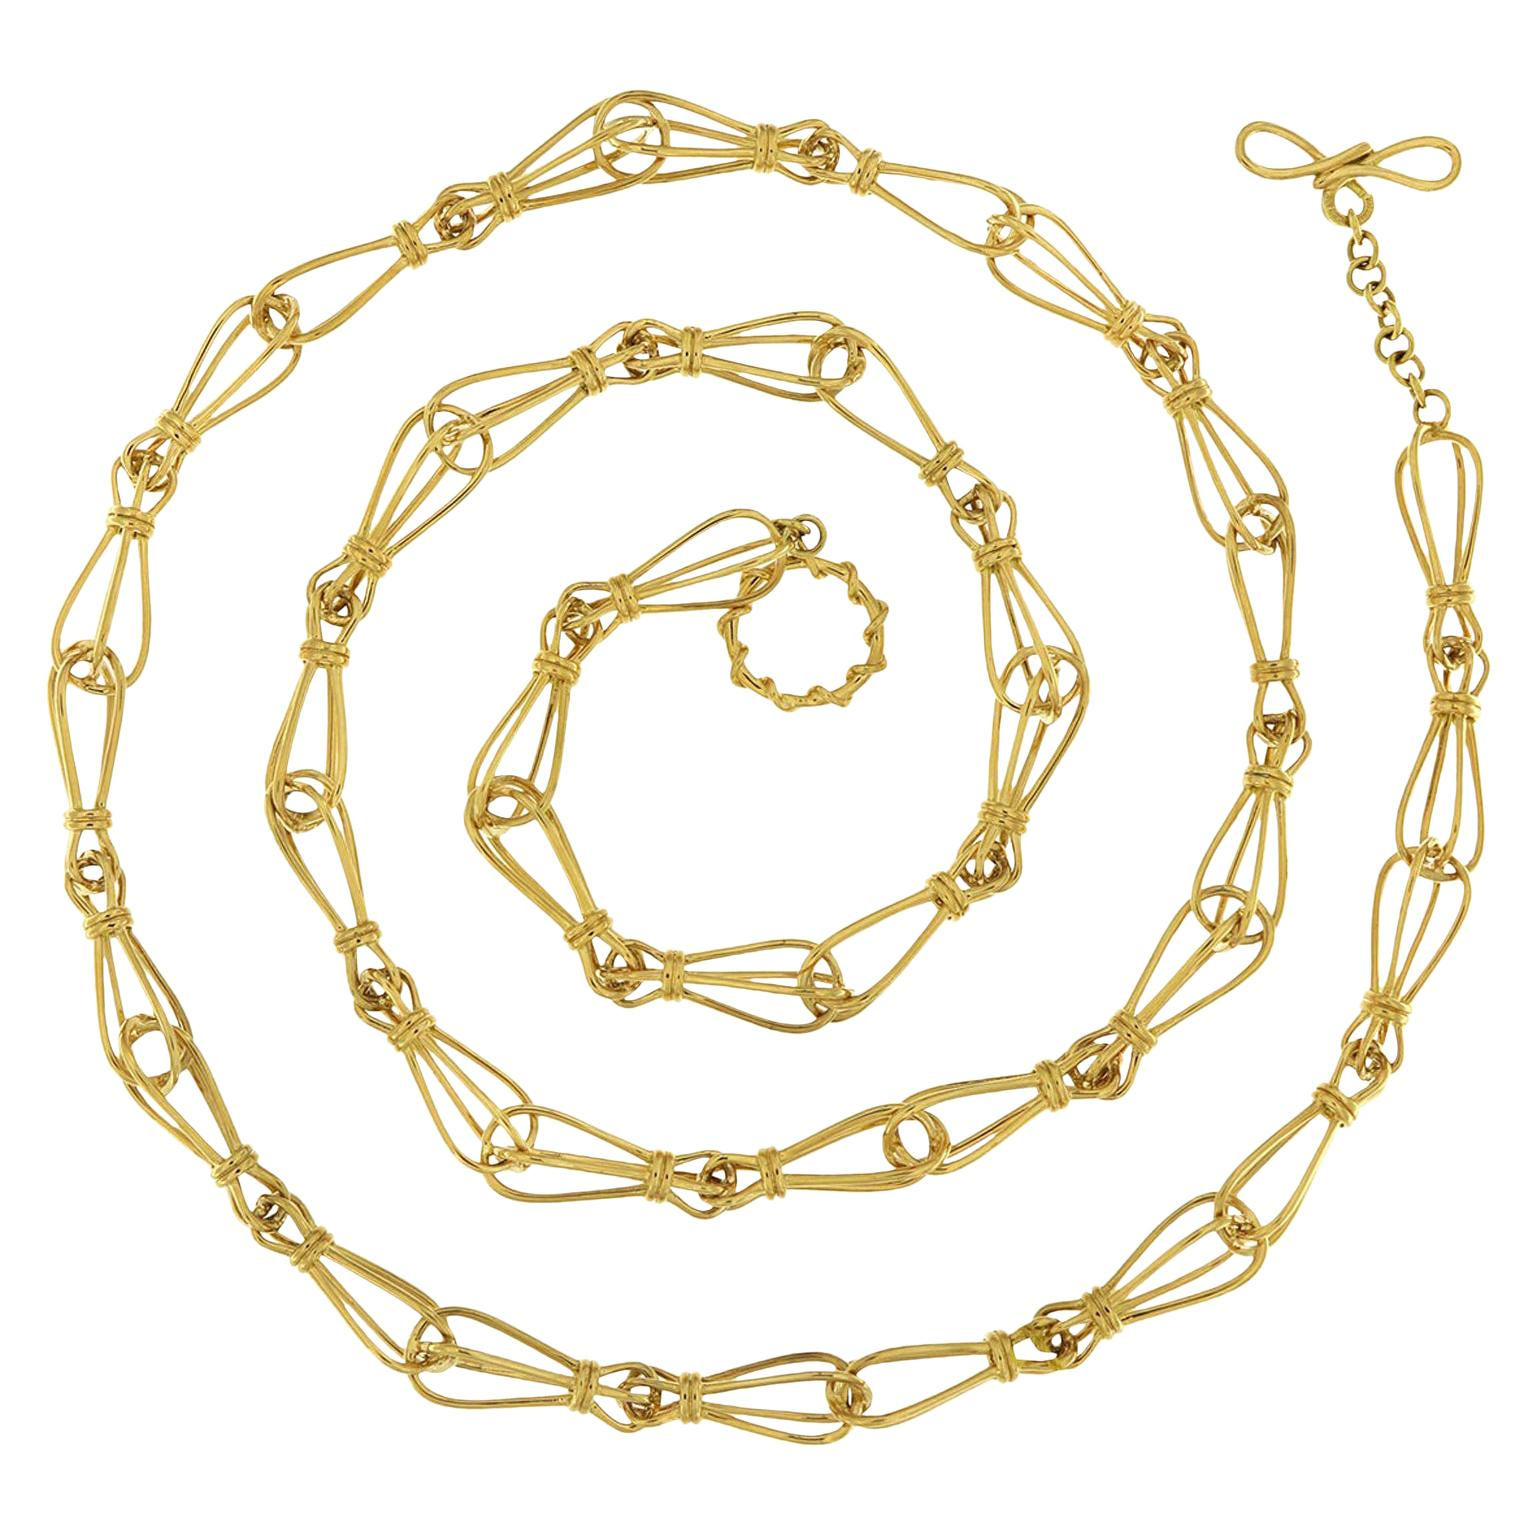 Valentin Magro Pear Shaped Gold Link Chain Necklace